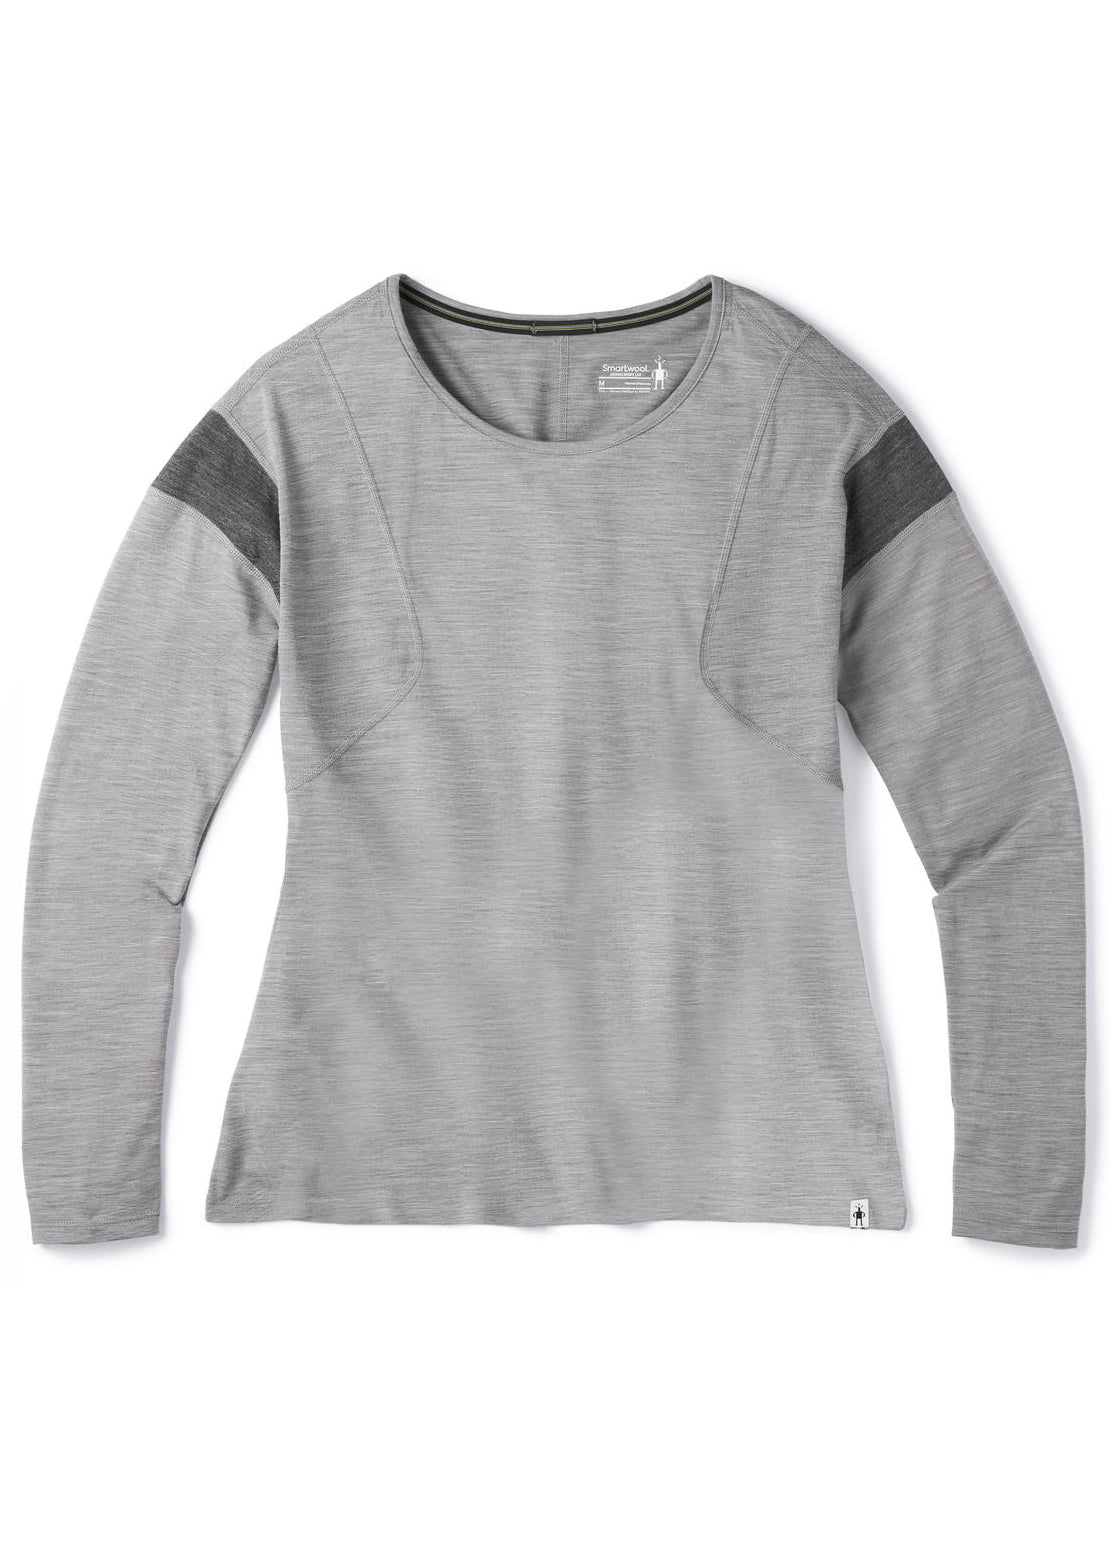 Smartwool Women's Merino 150 Longsleeve Shirt Light Gray Heather